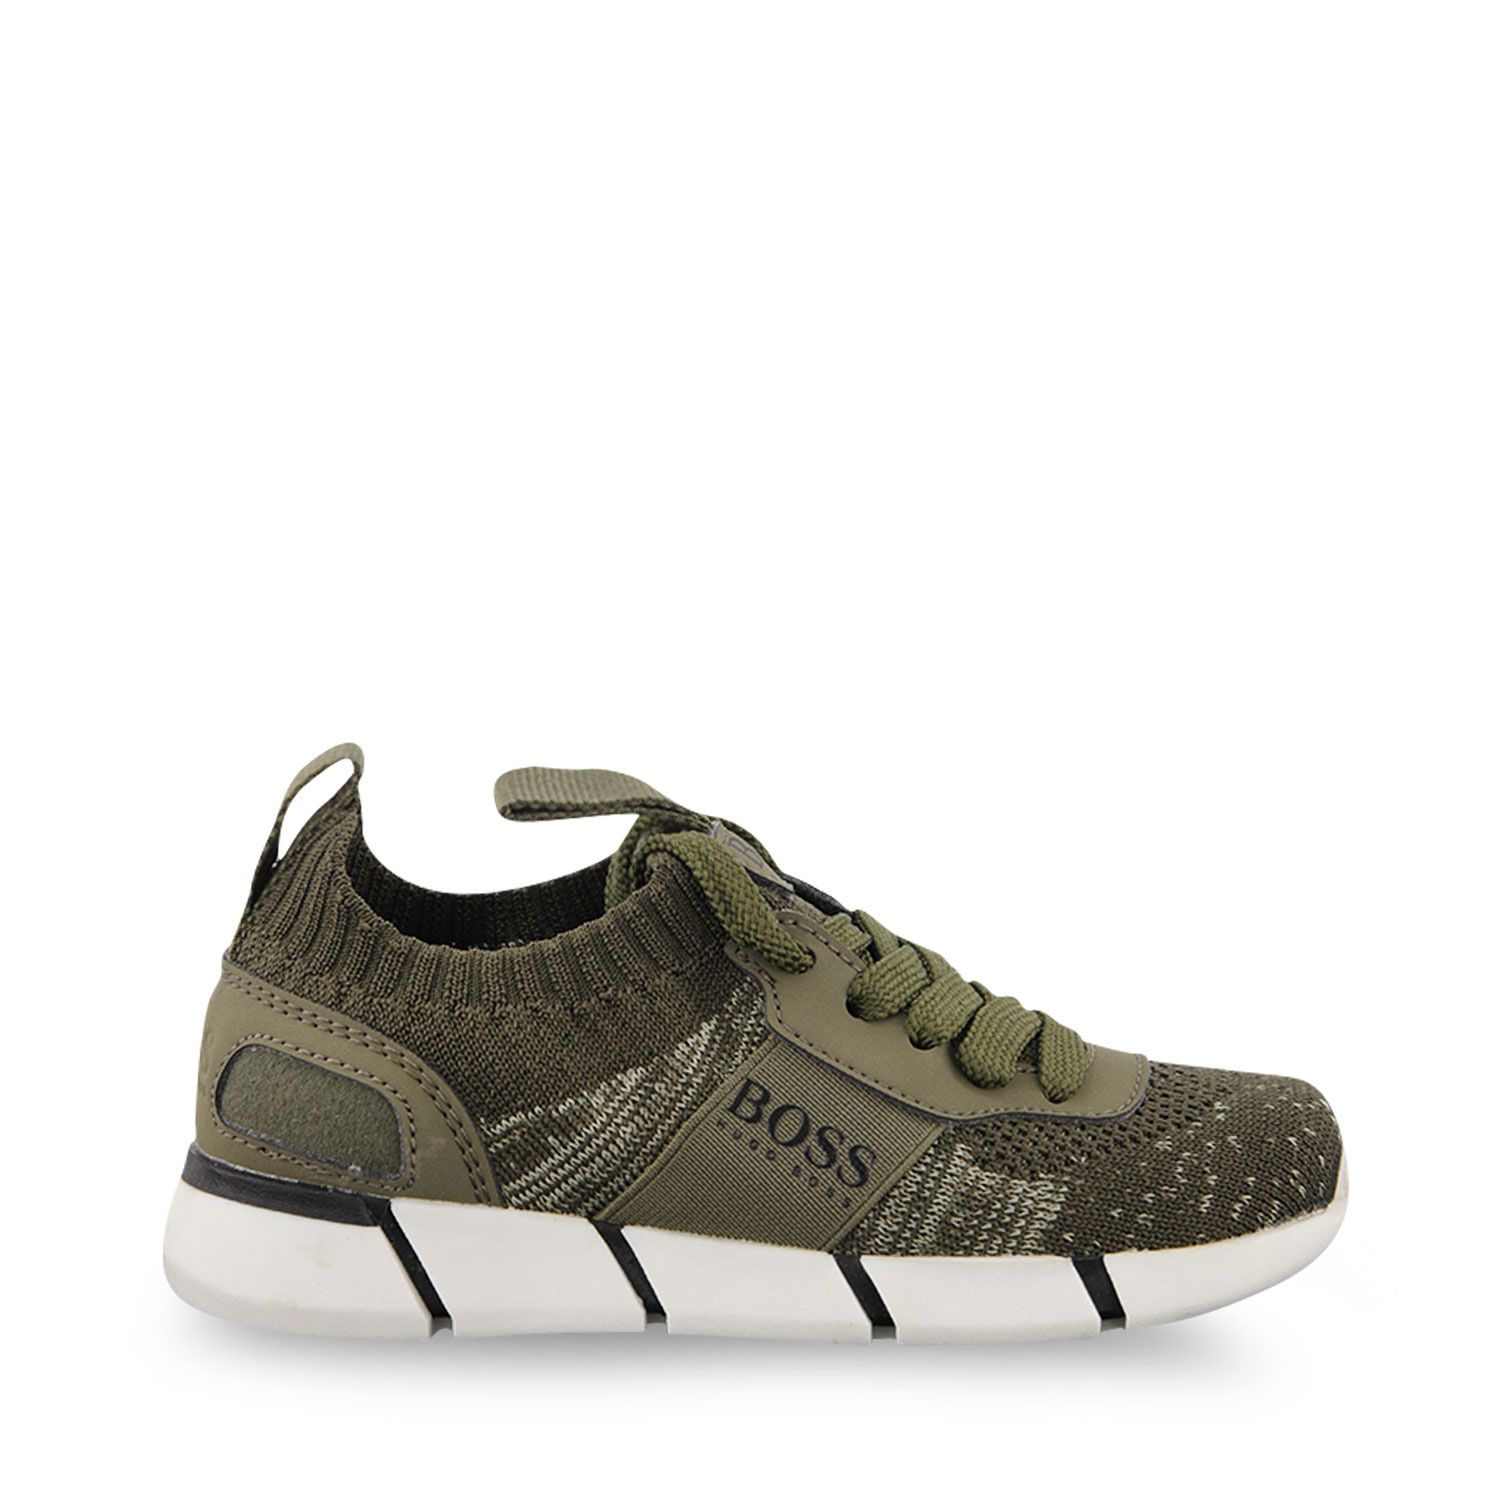 Picture of Boss J29252 kids sneakers army